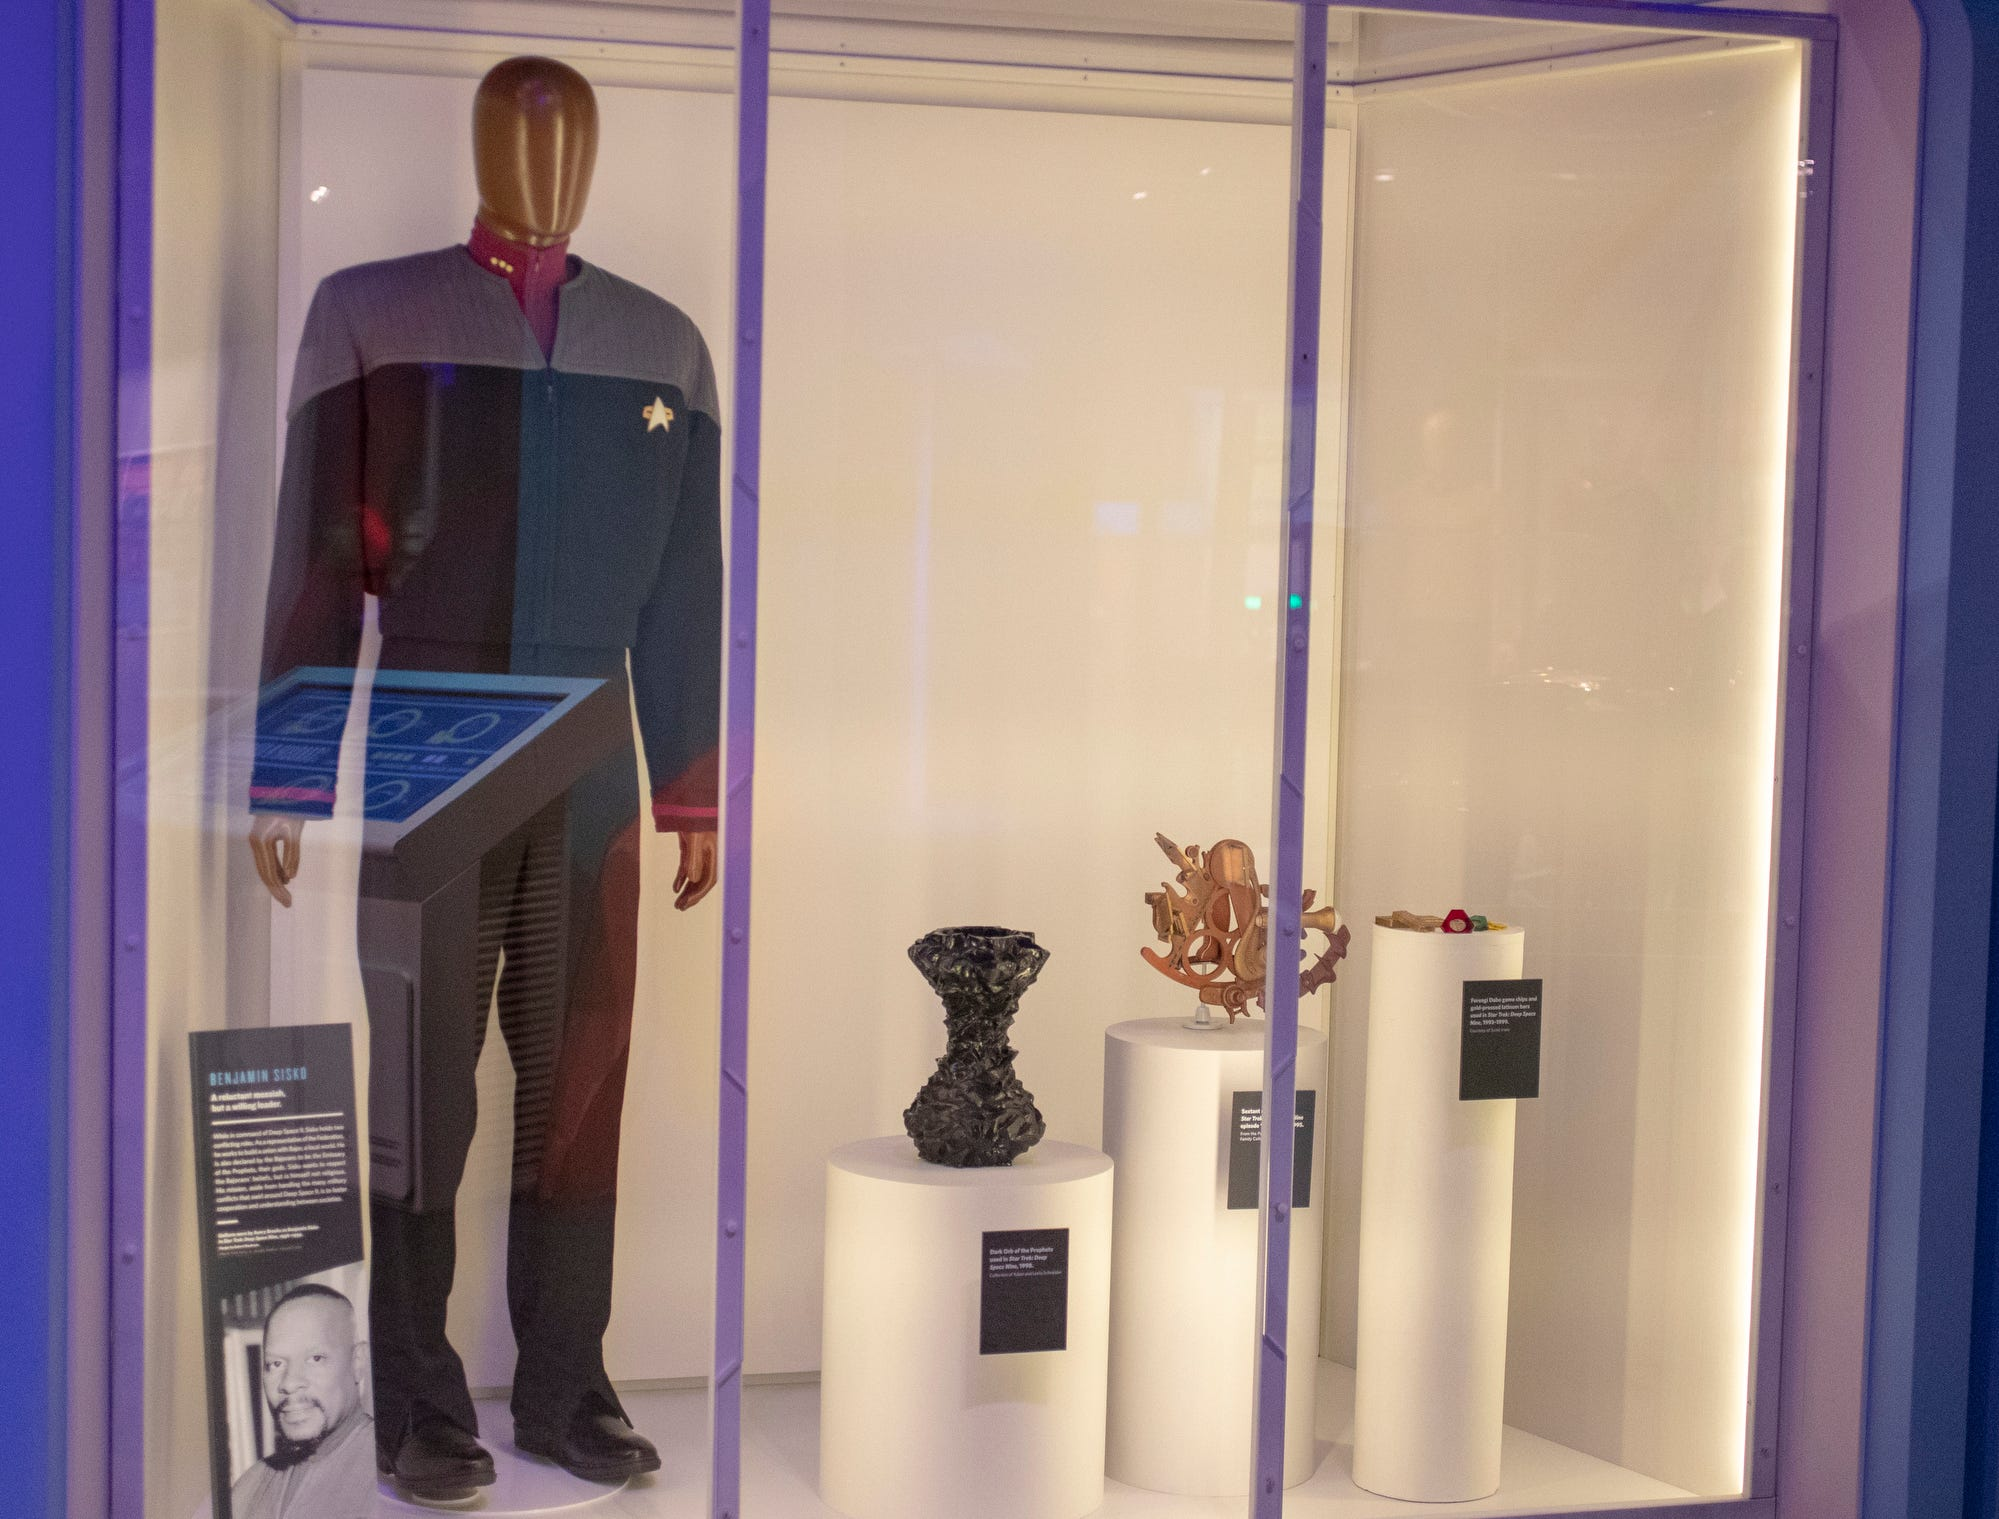 """Benjamin Sisko, a """"Star Trek: Deep Space Nine"""" character played by Evansville native Avery Brooks, is celebrated in this display at The Children's Museum of Indianapolis, Wednesday, Jan. 23, 2019. The """"Star Trek: Exploring New Worlds"""" exhibit is made up of set pieces, ship models and outfits used during various Star Trek shows and movies and is on display at the museum from Feb. 2 through April 7, 2019."""